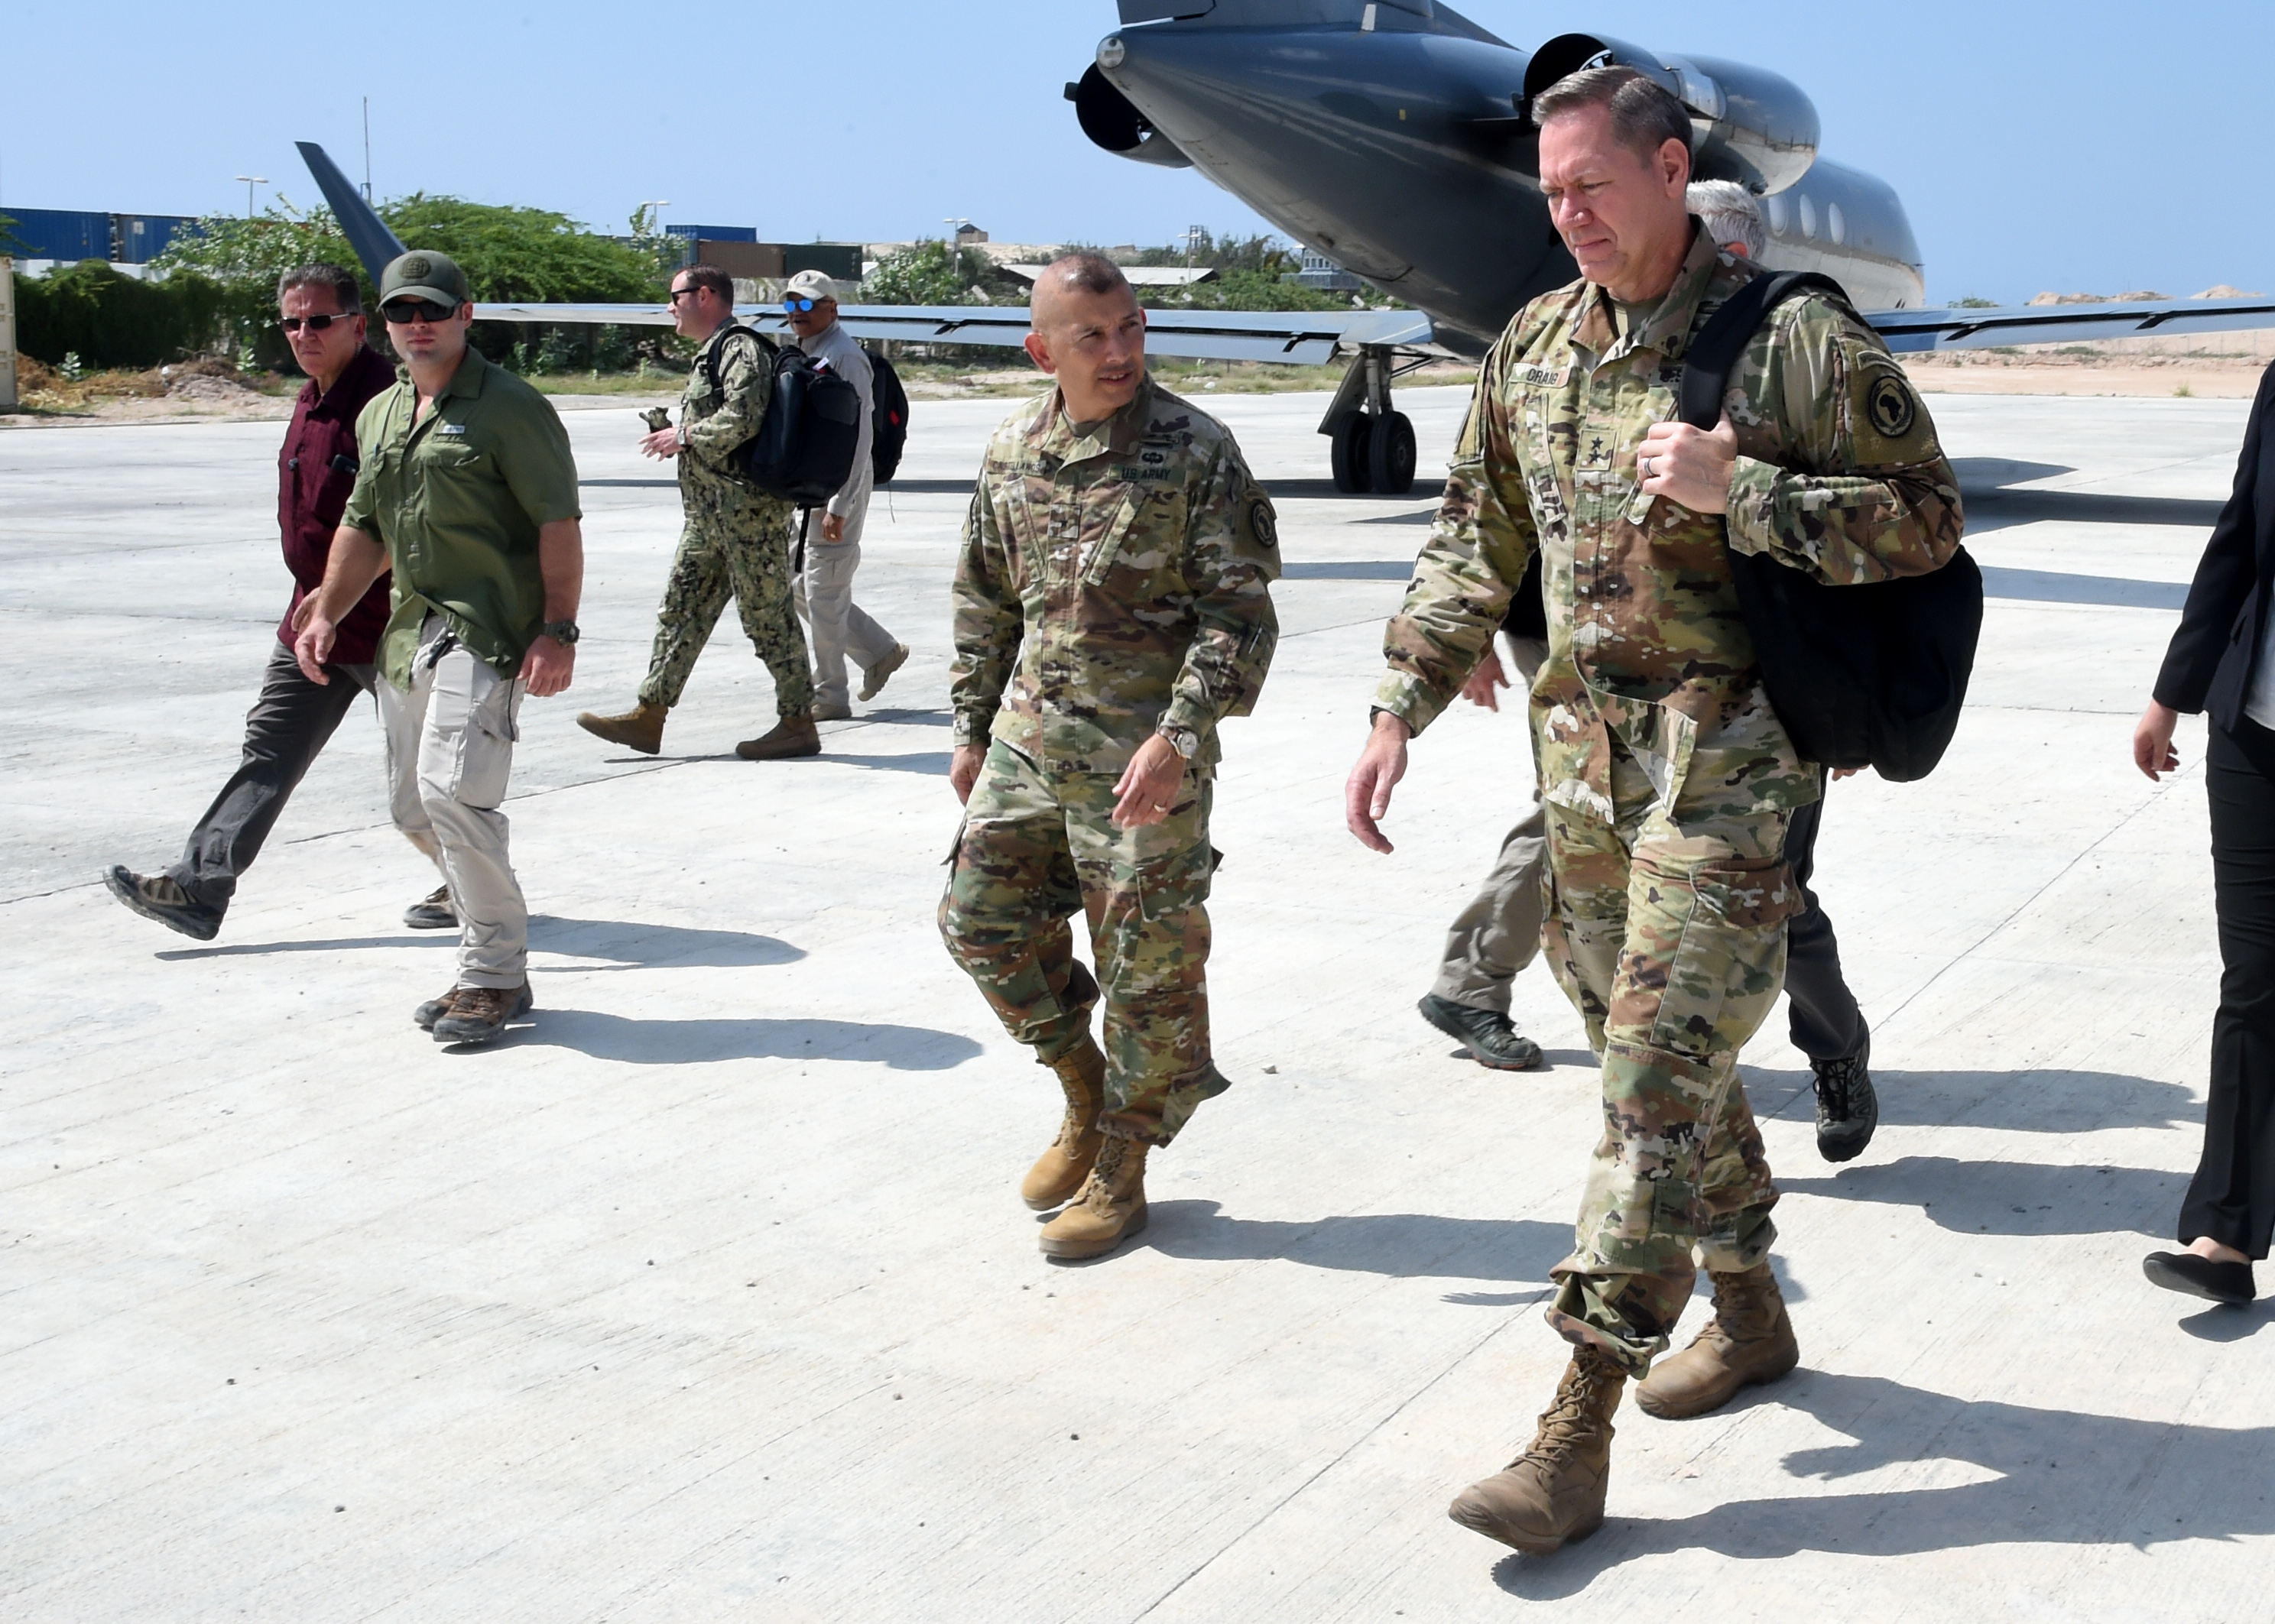 MOGADISHU, Somalia – U.S. Army Major Gen. James D. Craig, commanding general, Combined Joint Task Force–Horn of Africa, walks on the flight line at Aden Adde International Airport in Mogadishu, Somalia Nov. 27, 2018. During his visit to Mogadishu Craig also met with Somali President Mohamed Abdullahi Mohamed, and Marine Gen. Thomas D. Waldhauser, commanding general, U.S. Africa Command, to discuss development, security and stability in Somalia. 